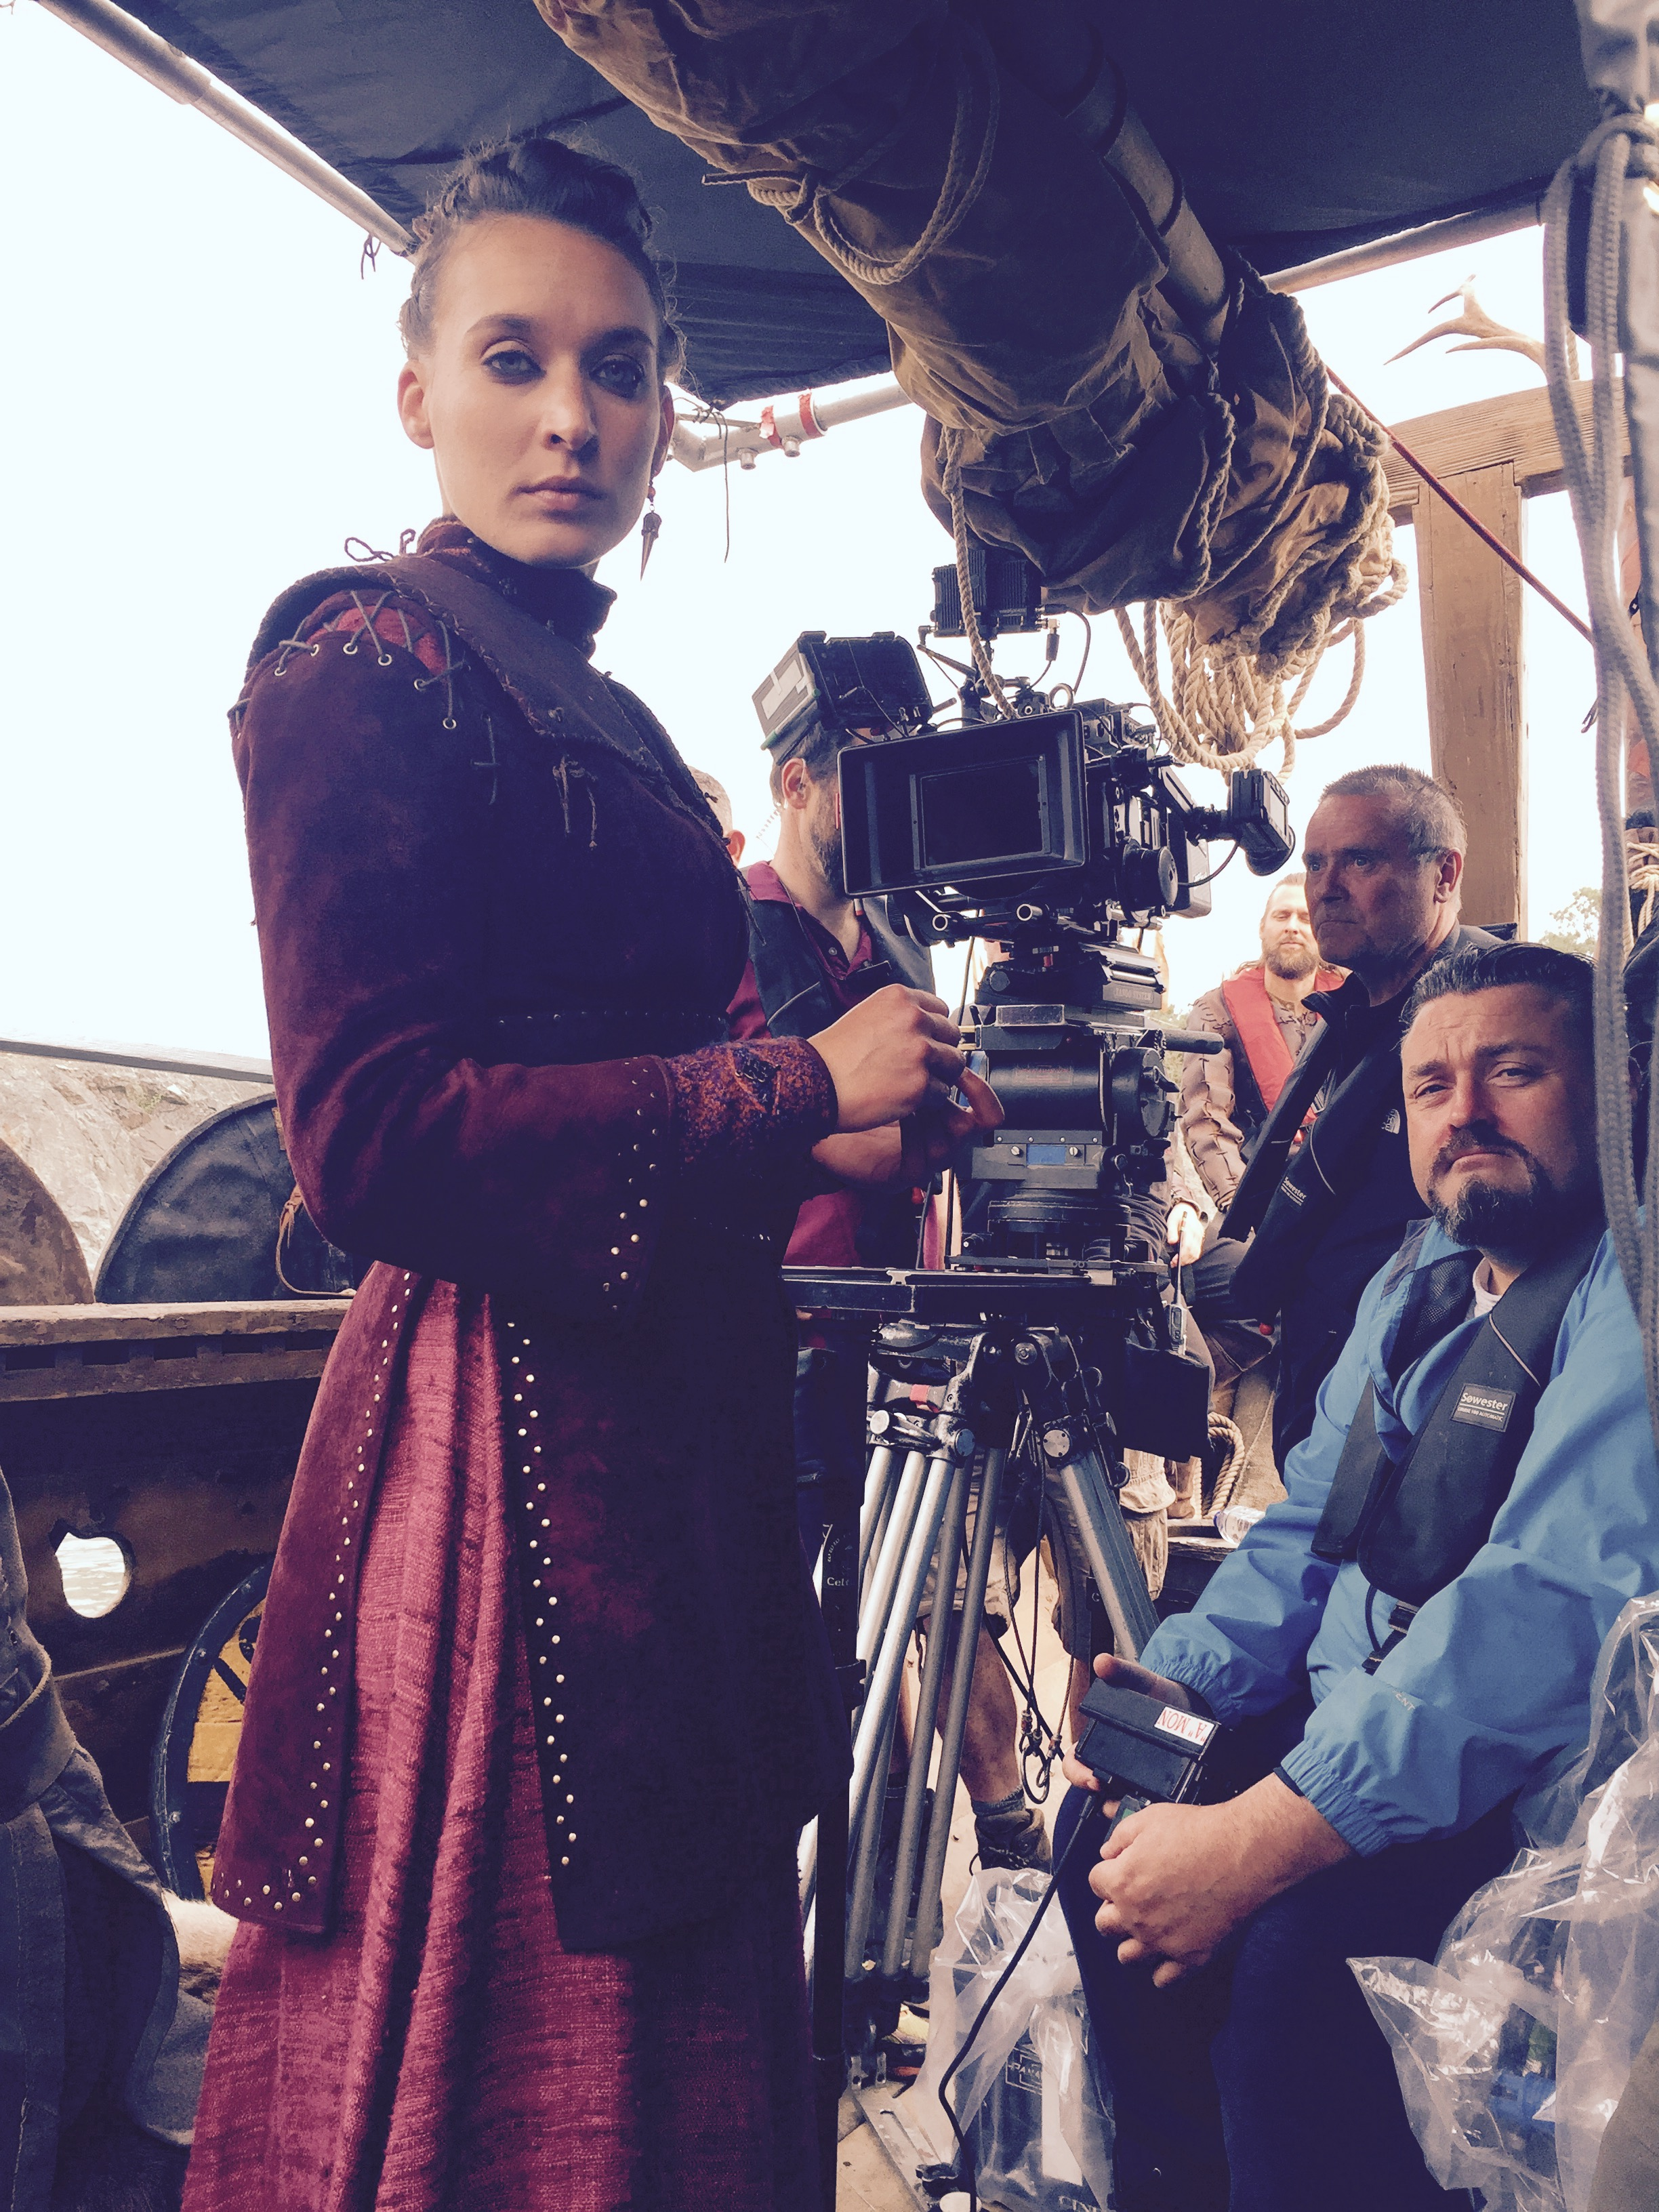 Behind the scenes of Vikings season 5